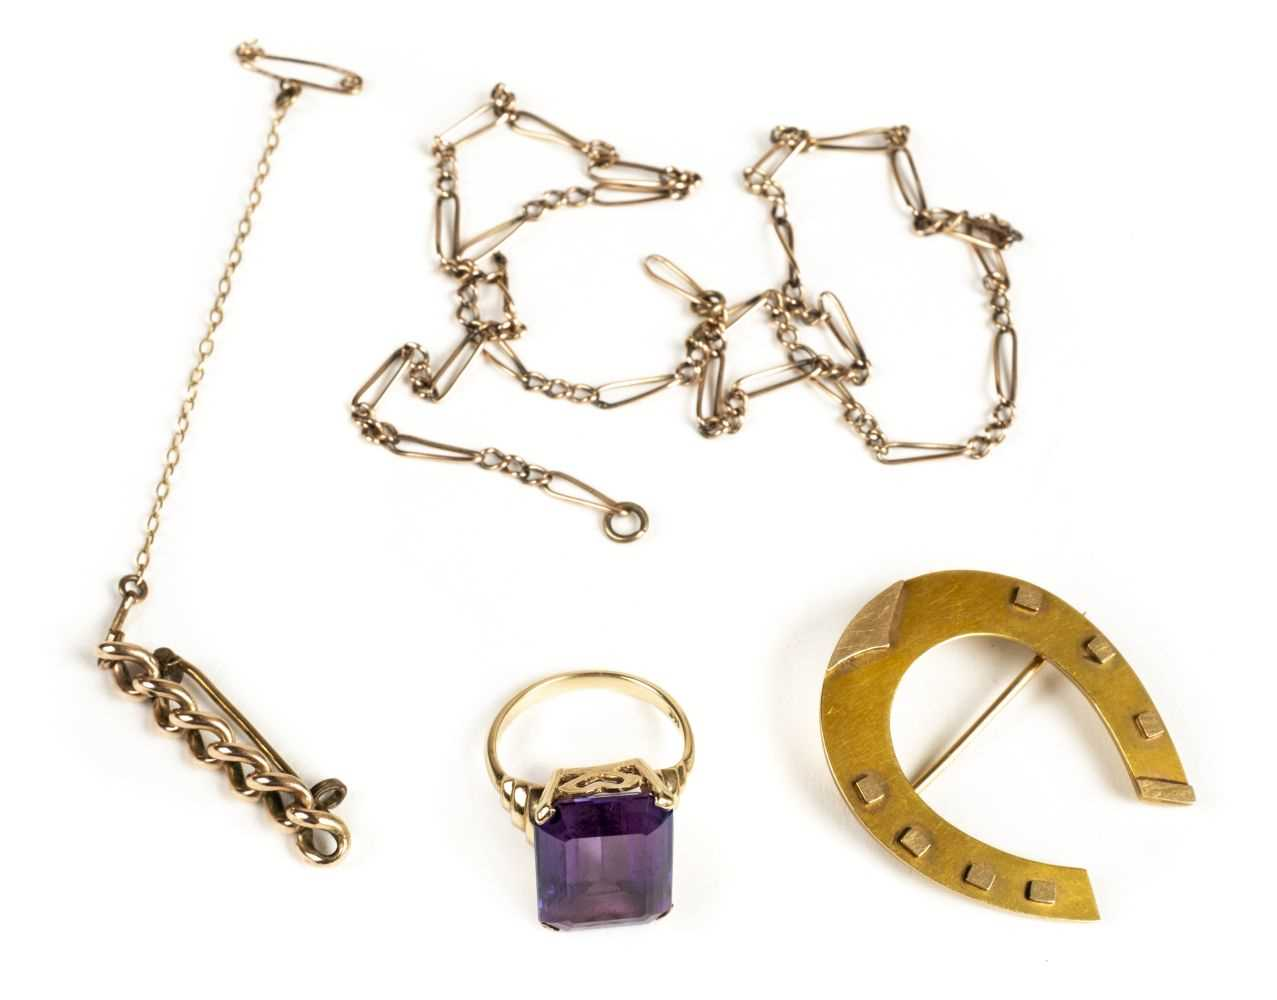 Lot 8 - Brooch. A Victorian 15ct gold horseshoe brooch and other gold items